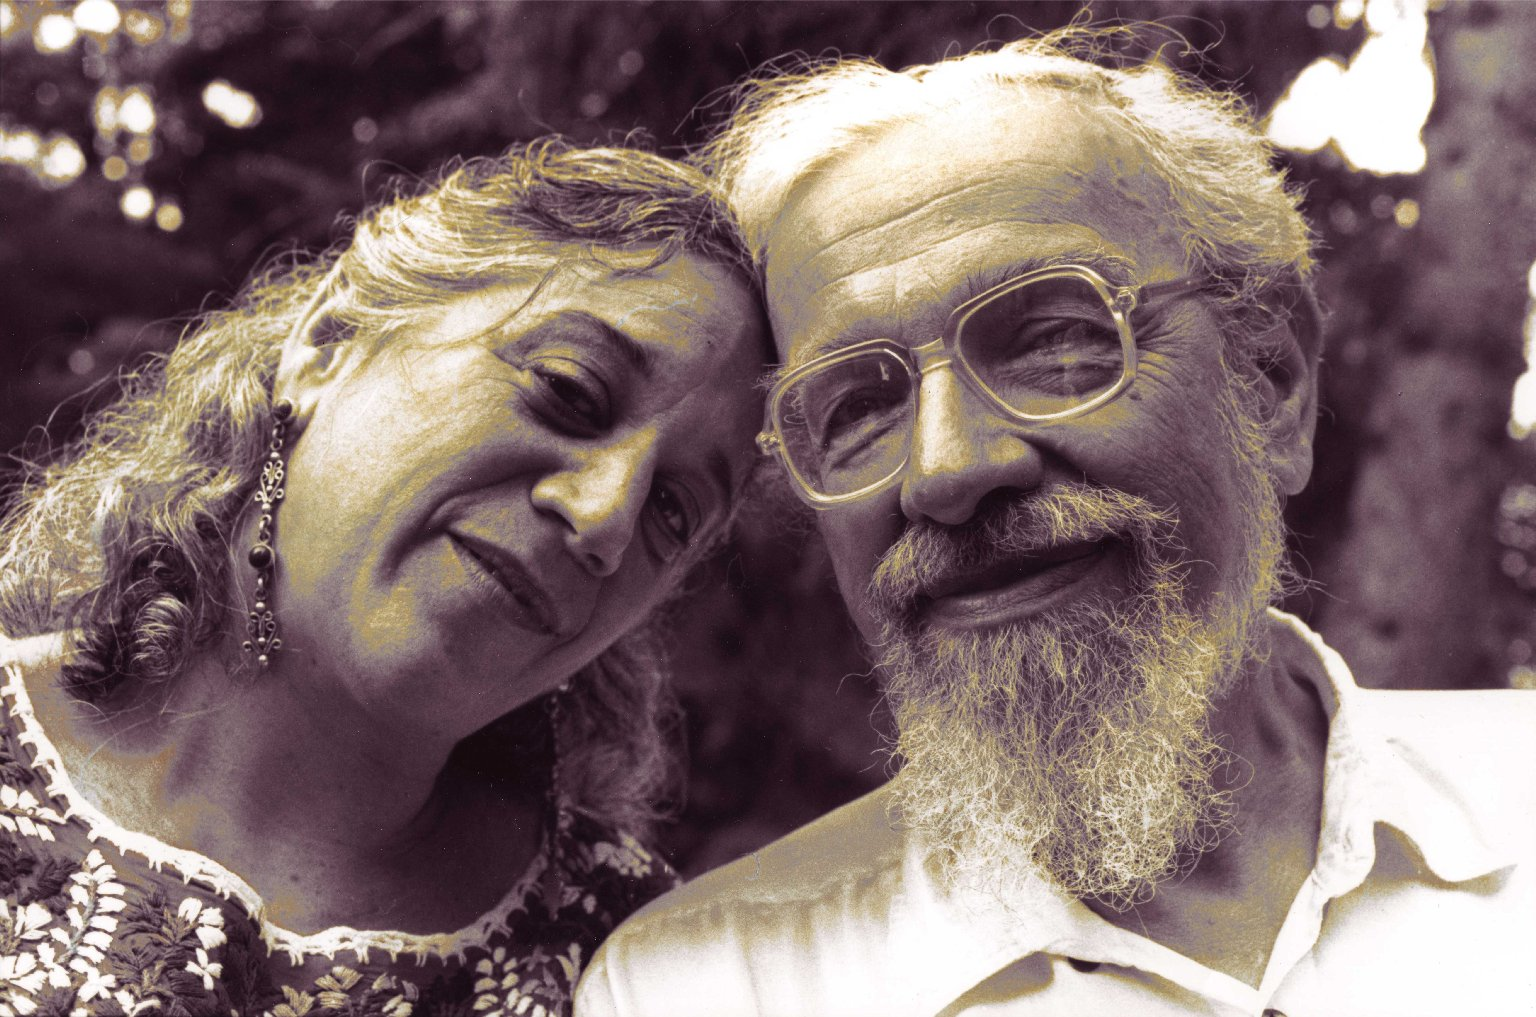 Eve Ilsen and Rabbi Zalman Schachter-Shalomi leaning their heads together, ca. 1995.